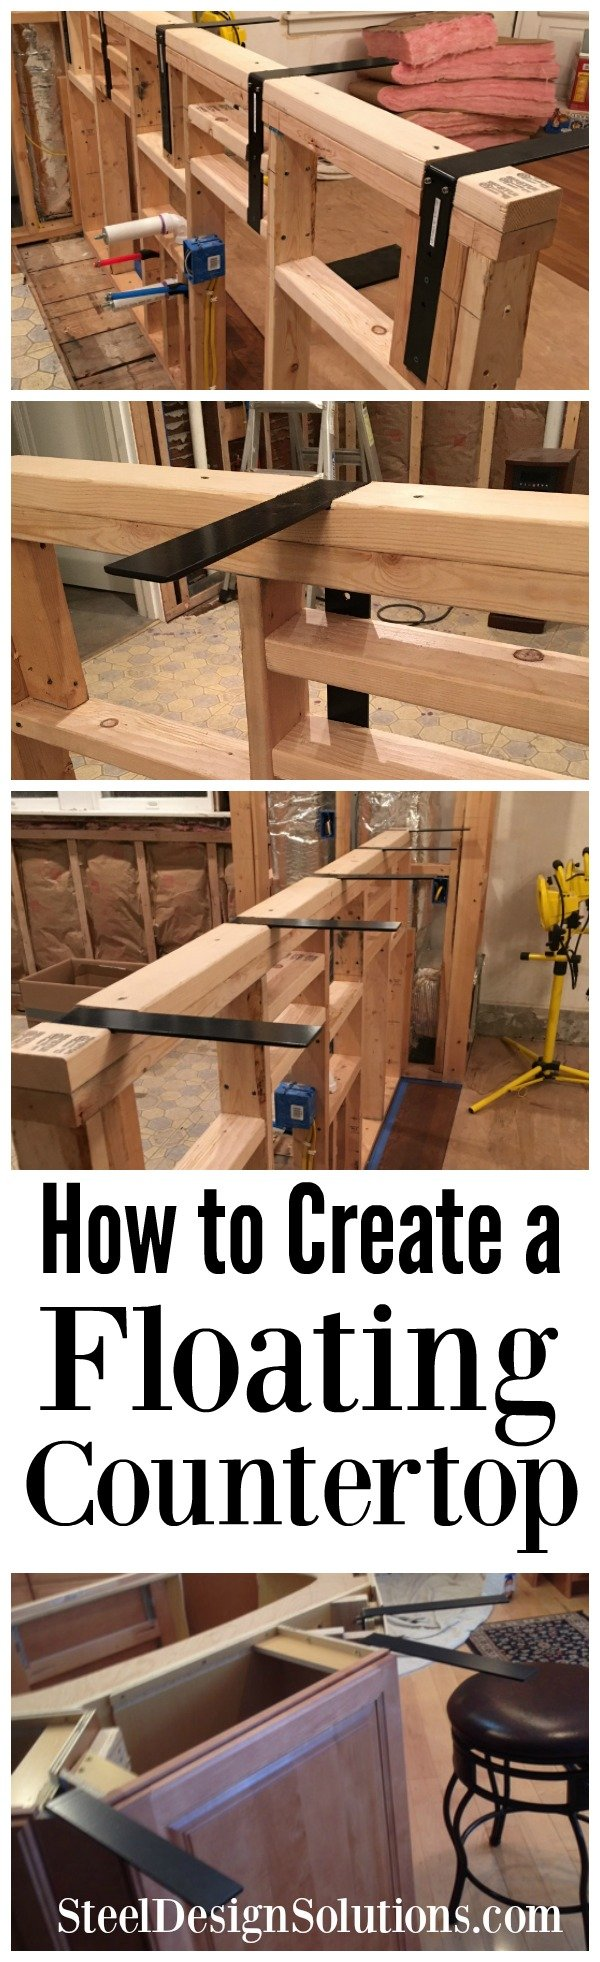 How To Create A Diy Floating Countertop Using The Floating Surface